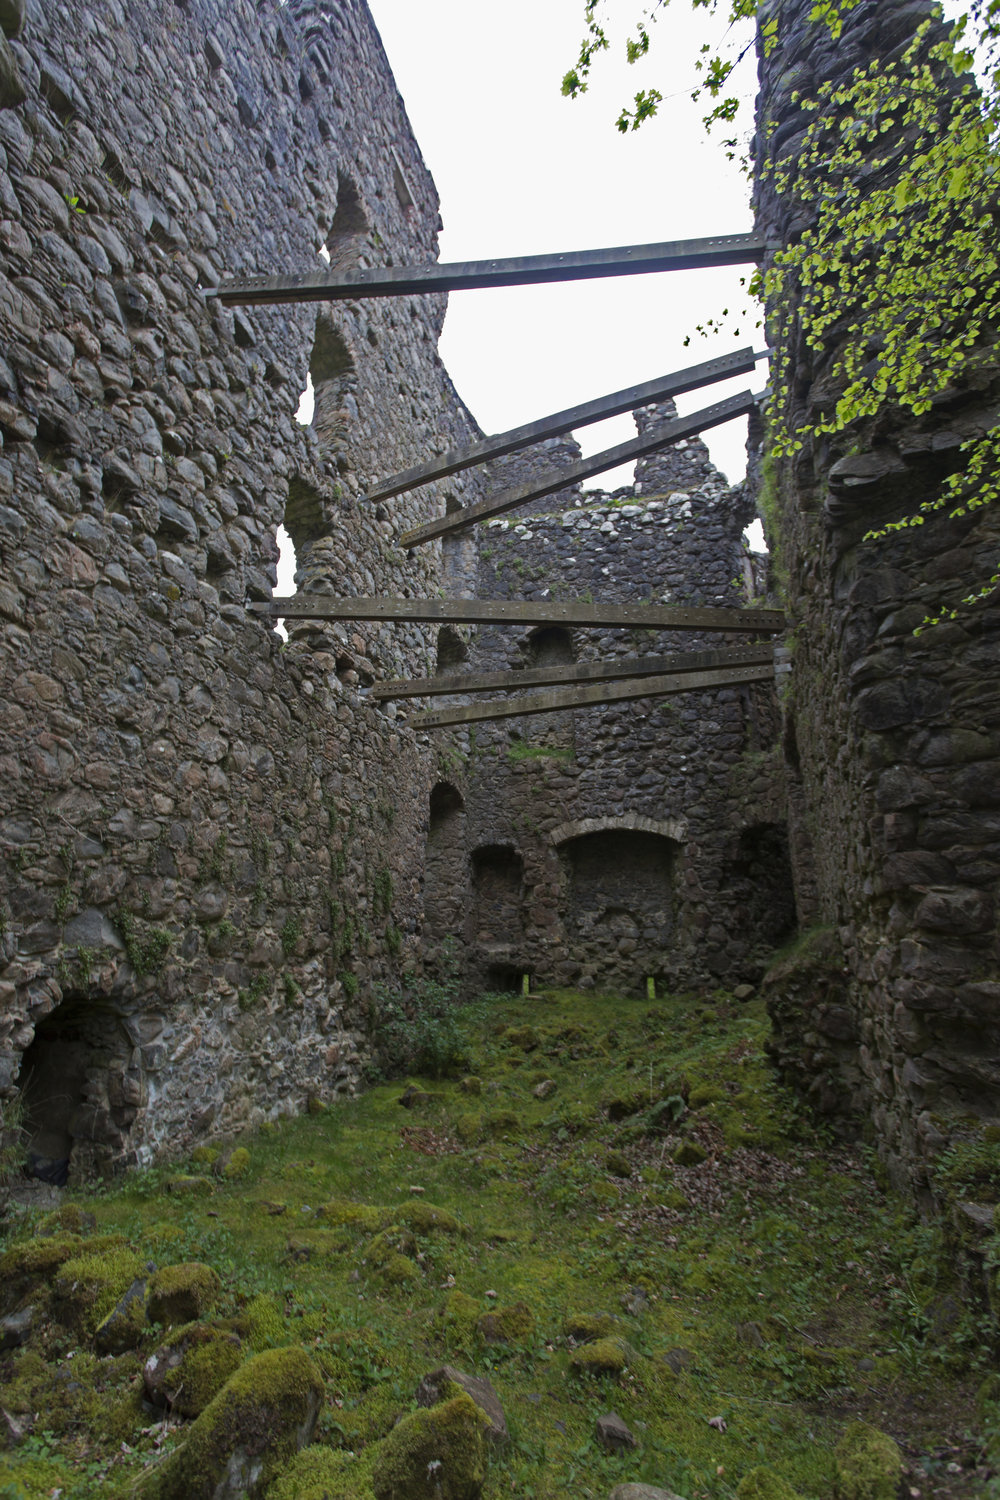 After docking, we hiked up to the ruins of Invergarry Castle which was gorgeous.